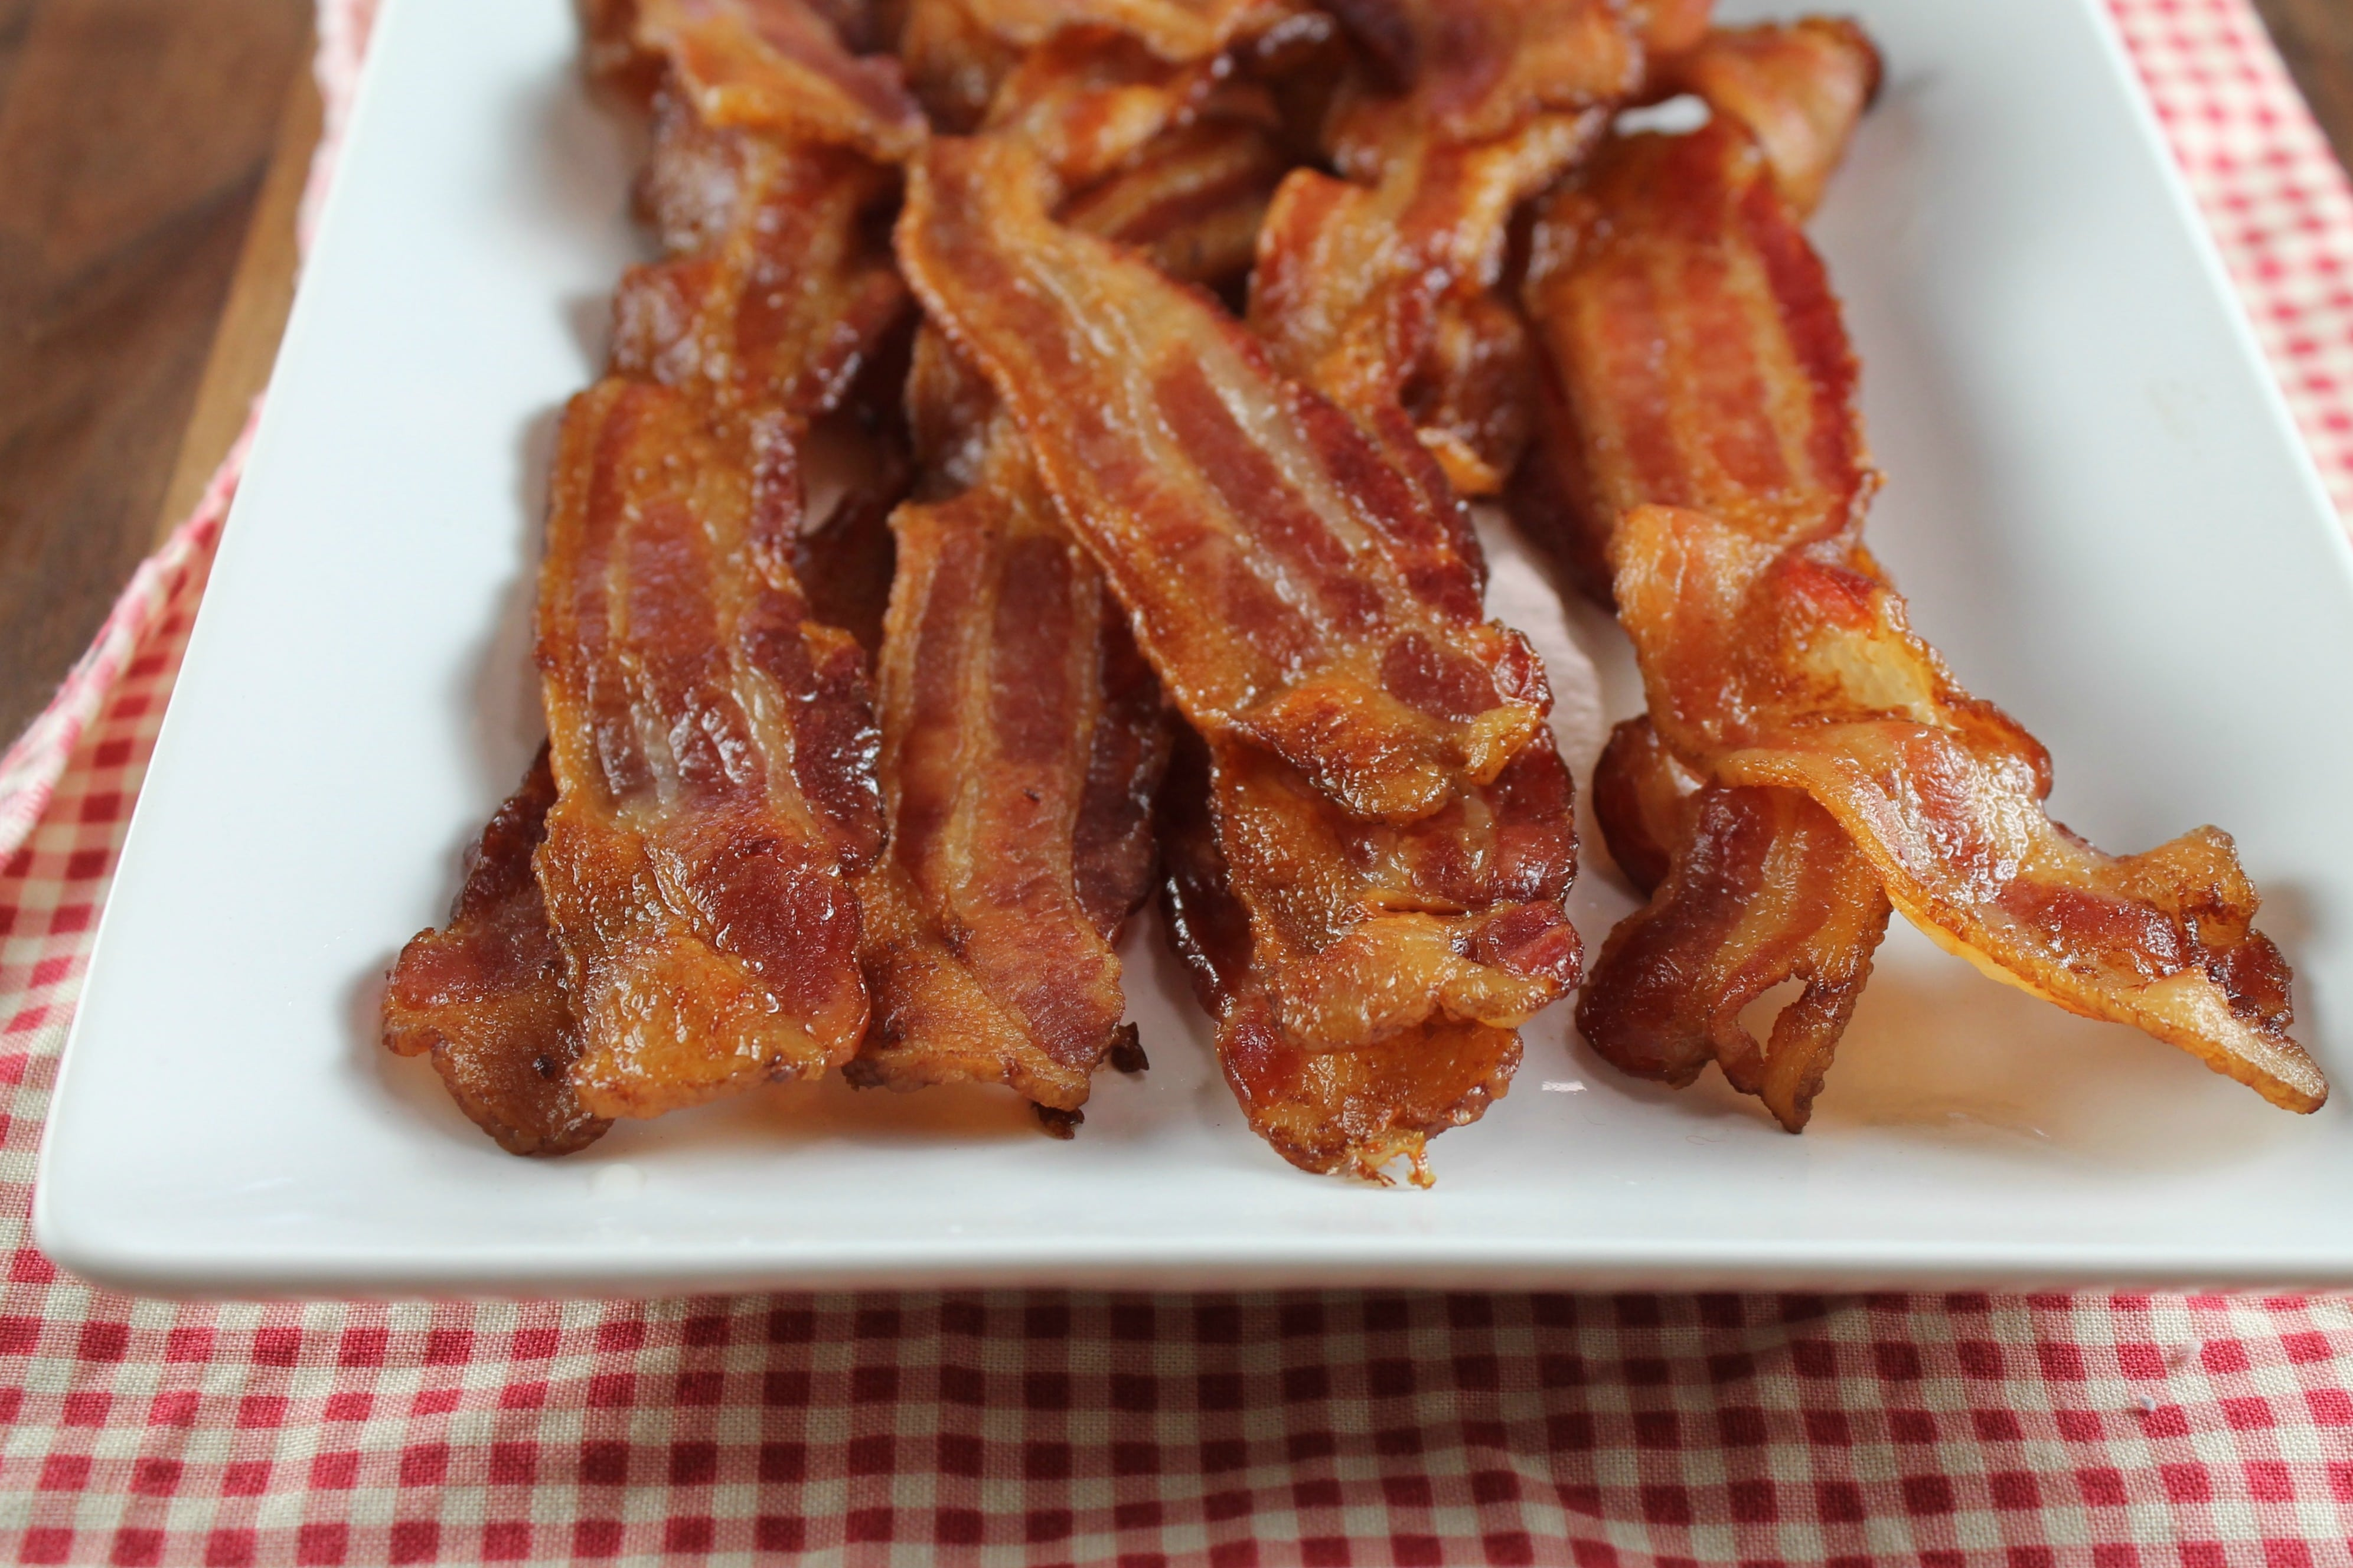 Crisp bacon slices